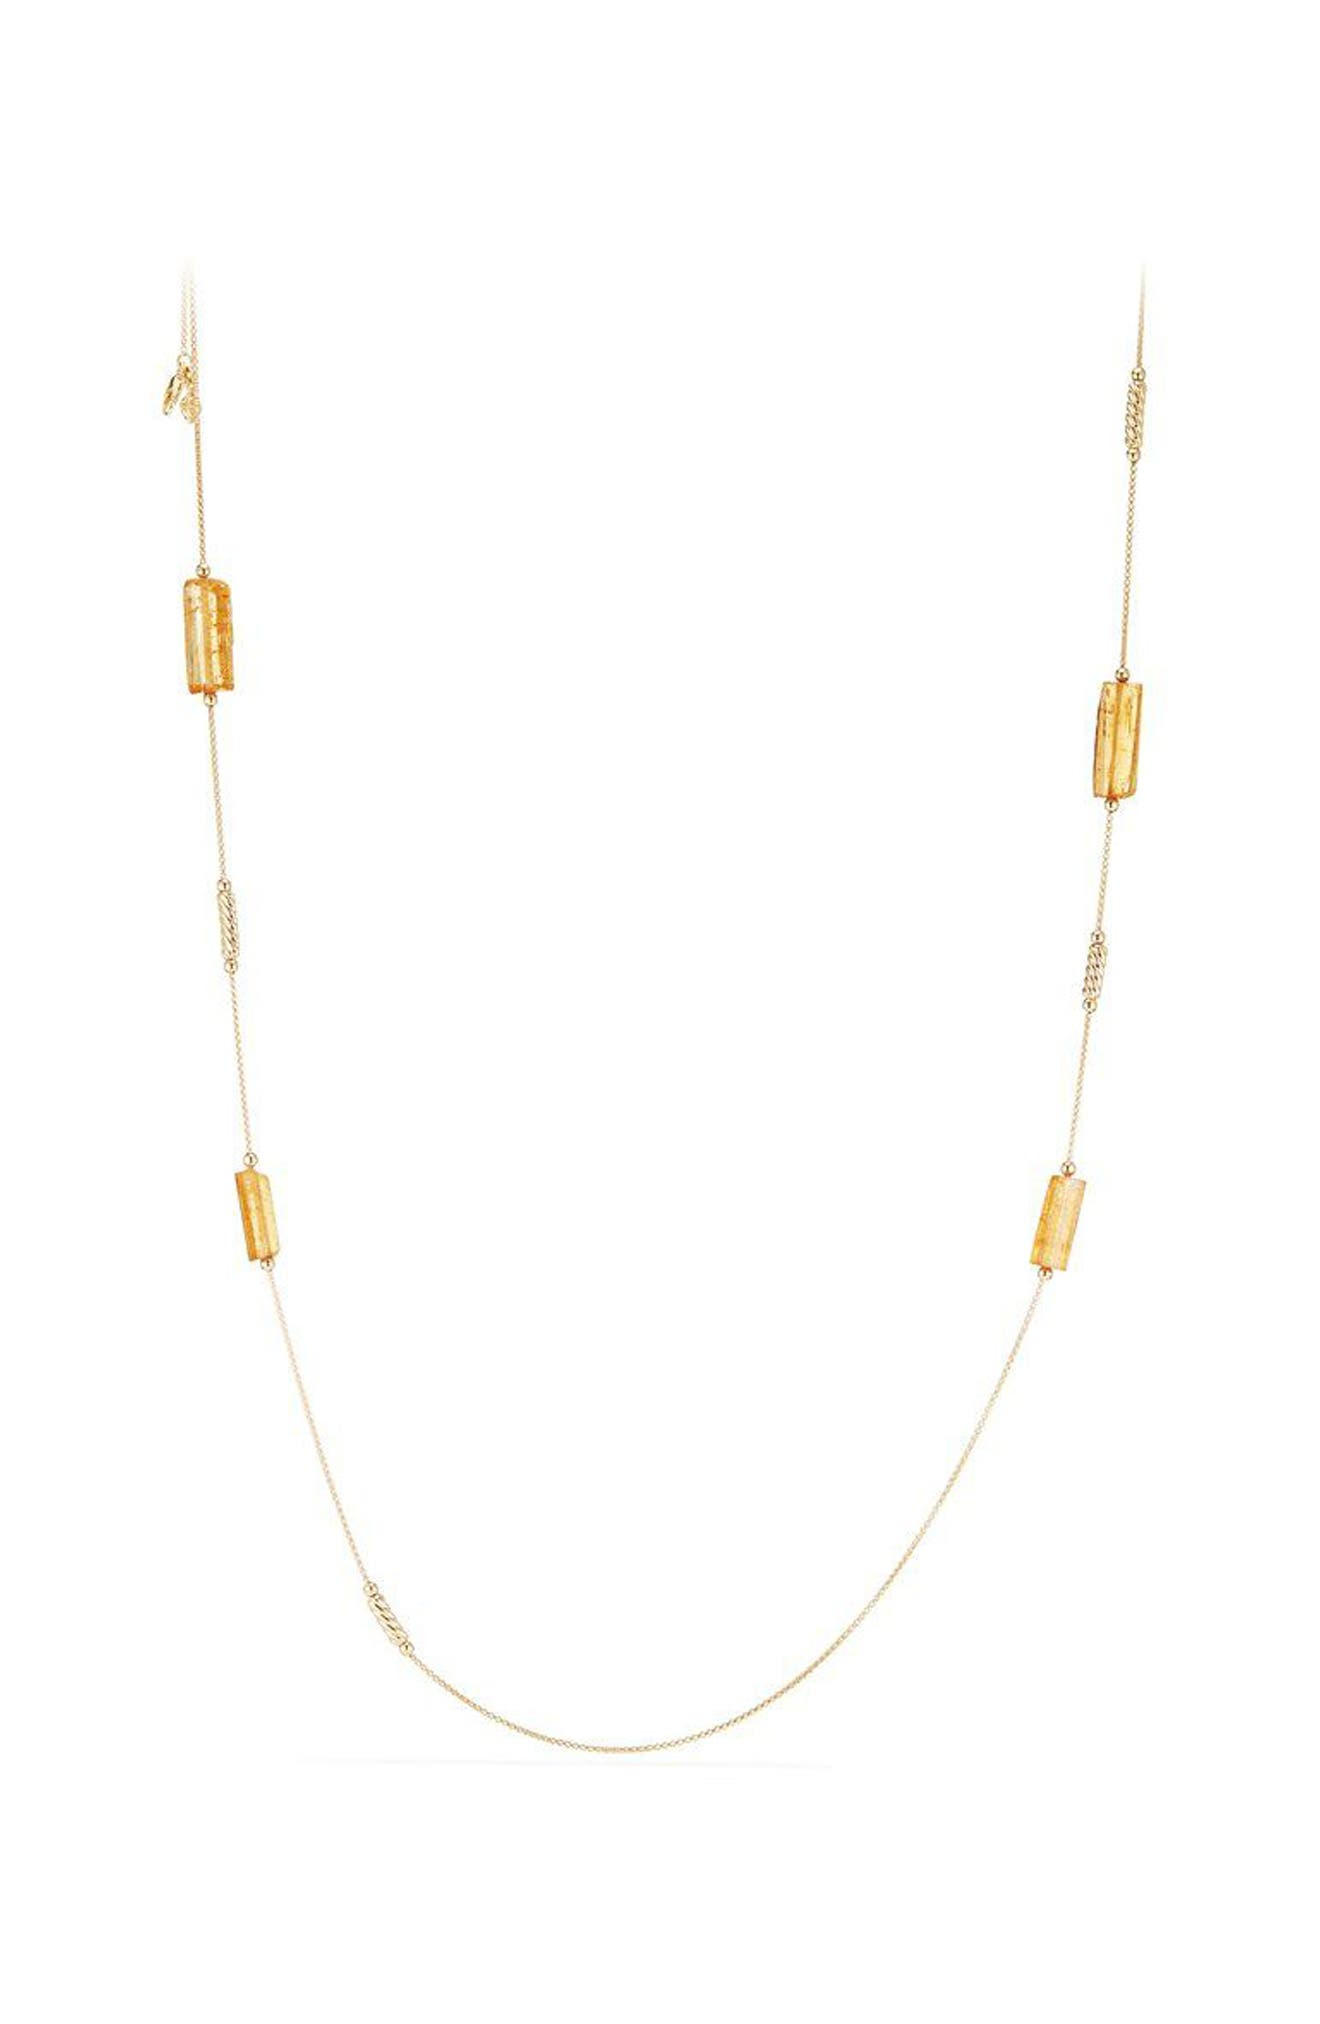 Fine Bead Imperial Topaz Chain Necklace,                             Main thumbnail 1, color,                             800